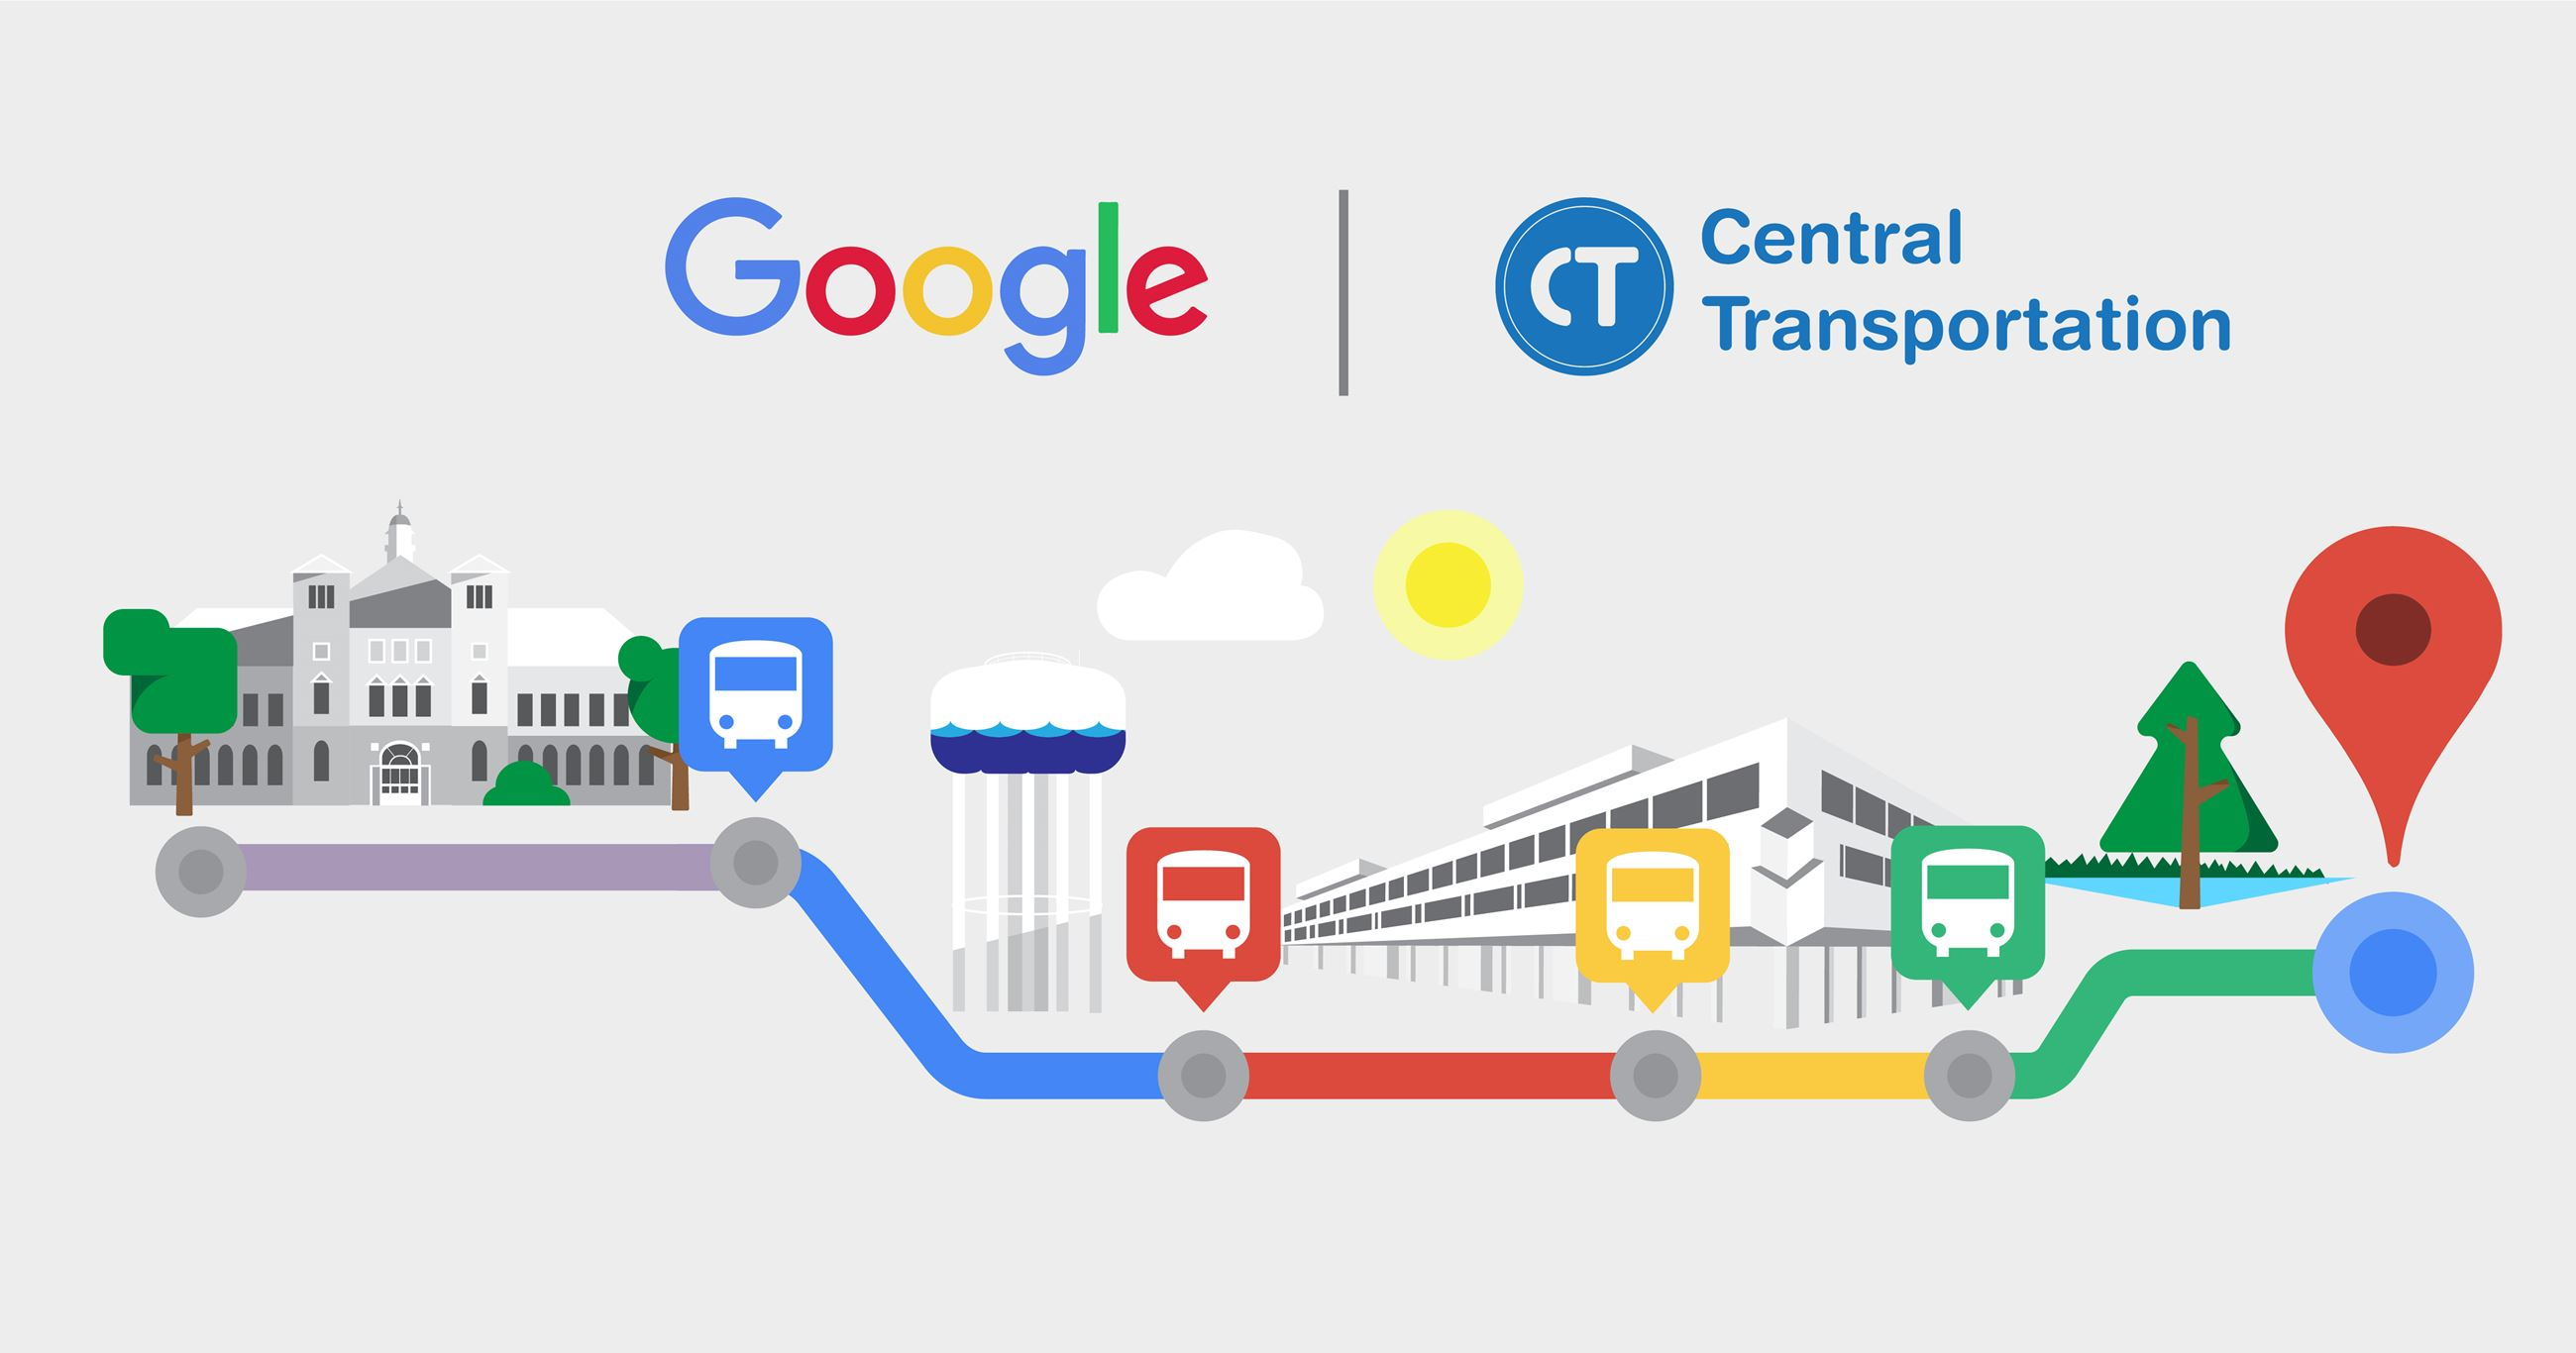 Central Transportation Google Maps Opens in new window